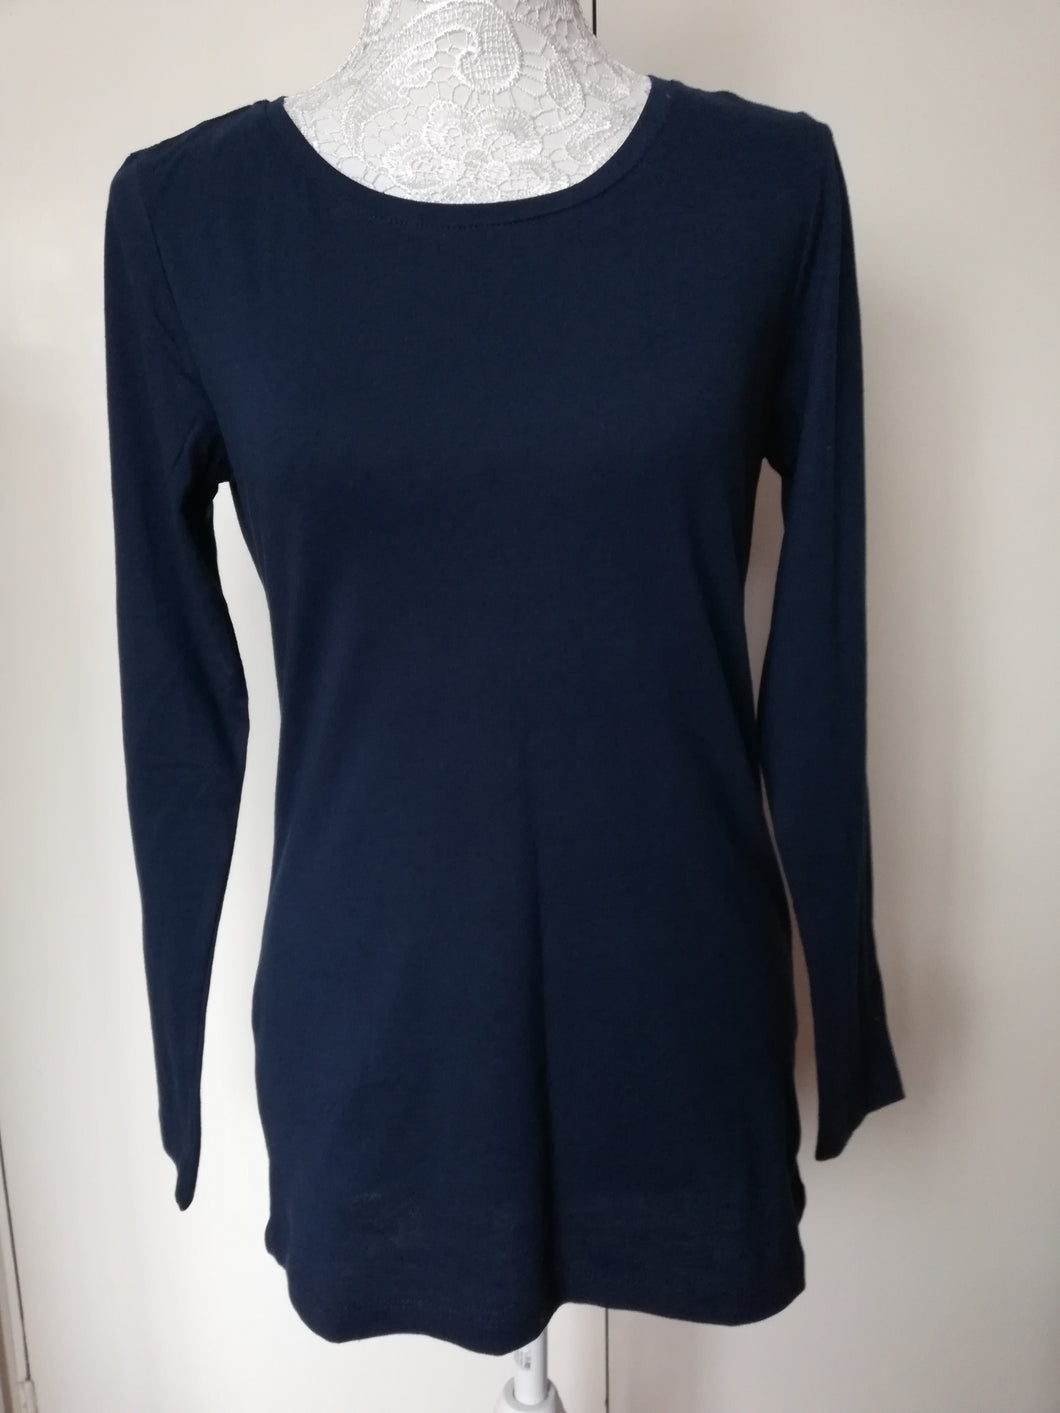 Lily & Me navy layering tee size 12